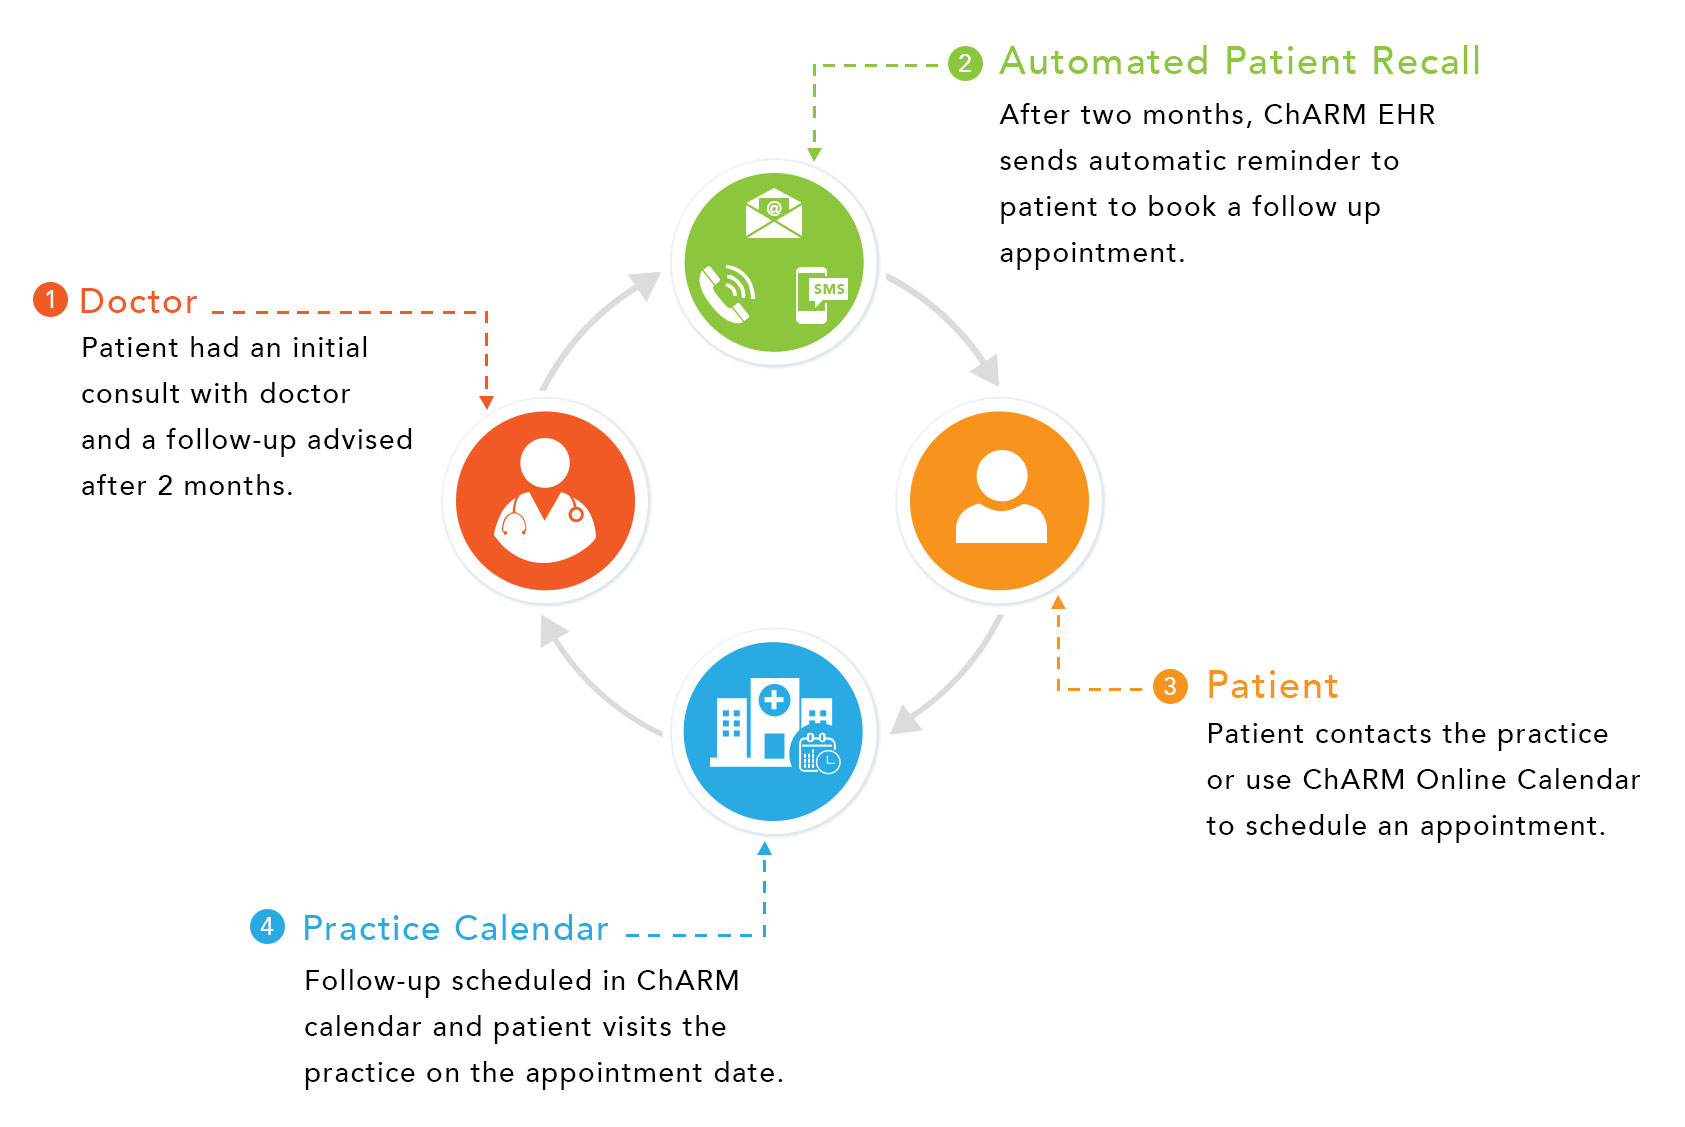 Automated Patient Recall